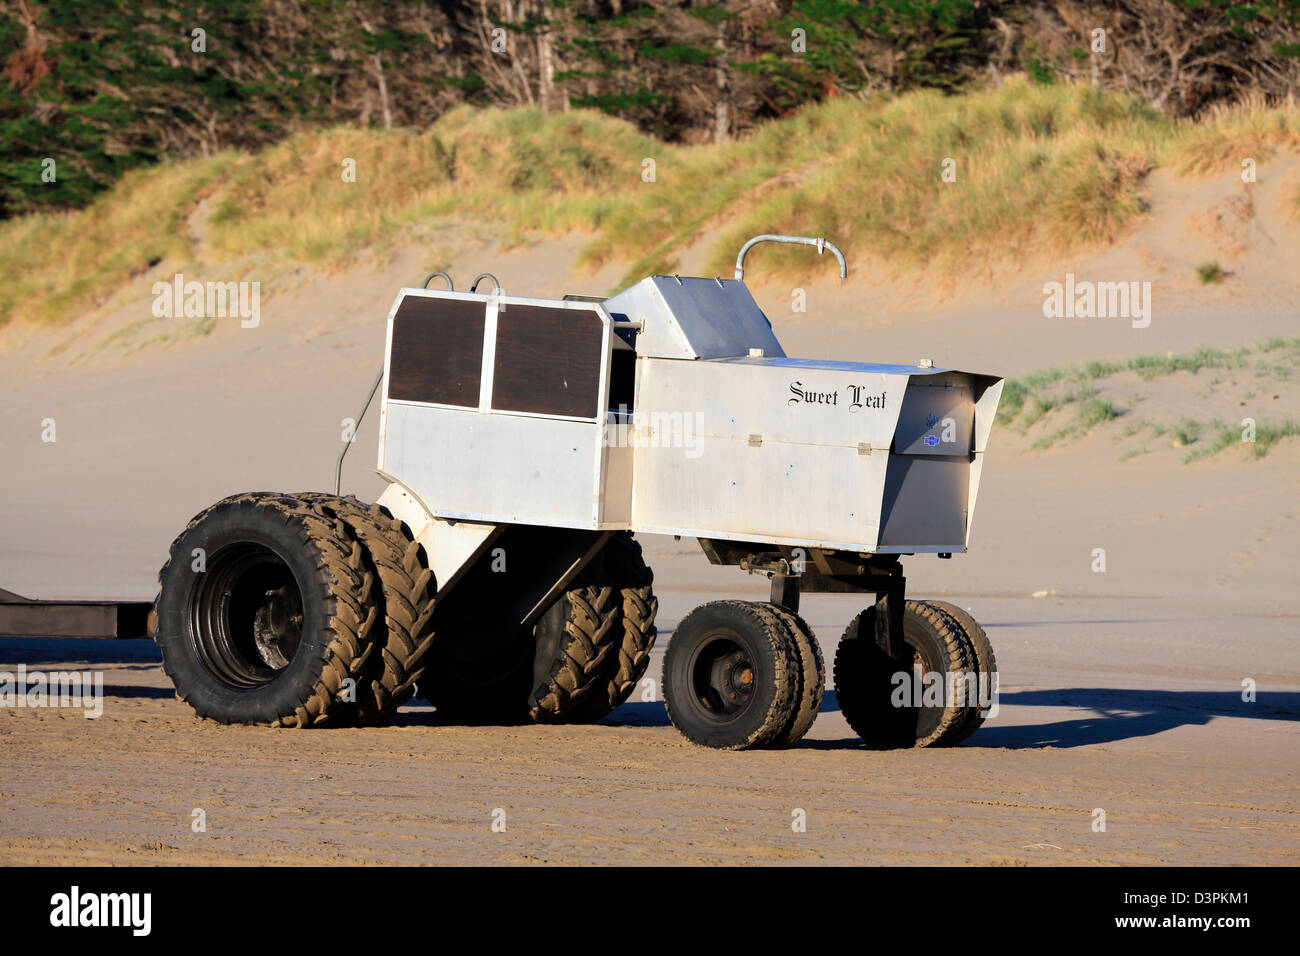 Unusual aluminum fishing boat tractor at Castlepoint in the Wairarapa - Stock Image